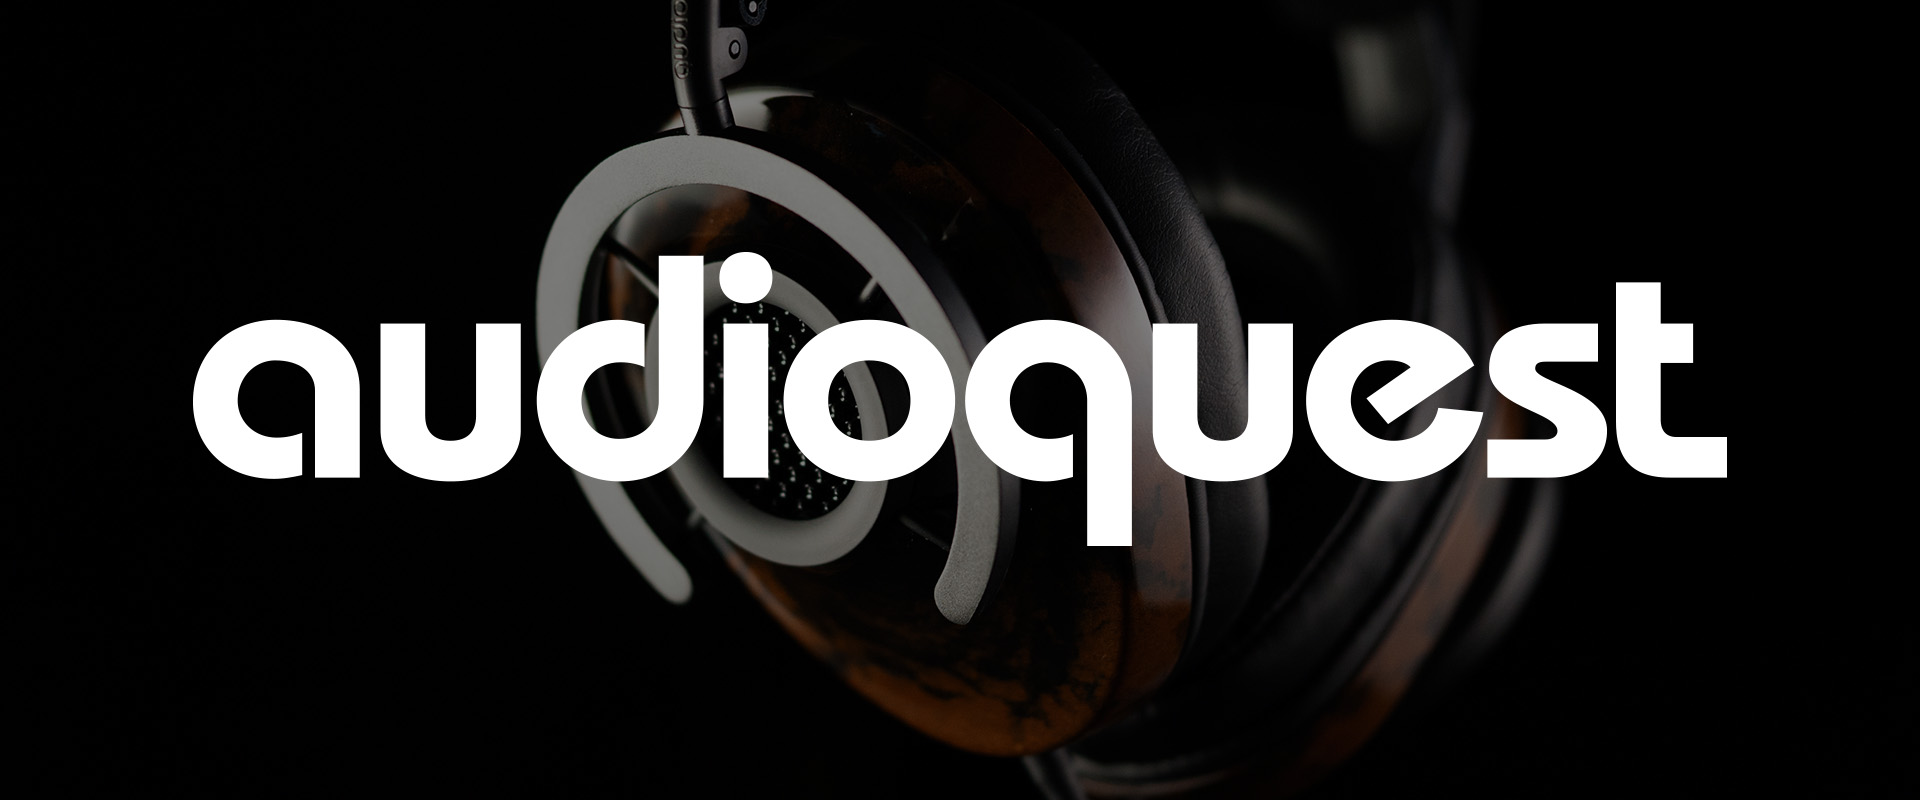 Audioquest - Chattelin Audio Systems